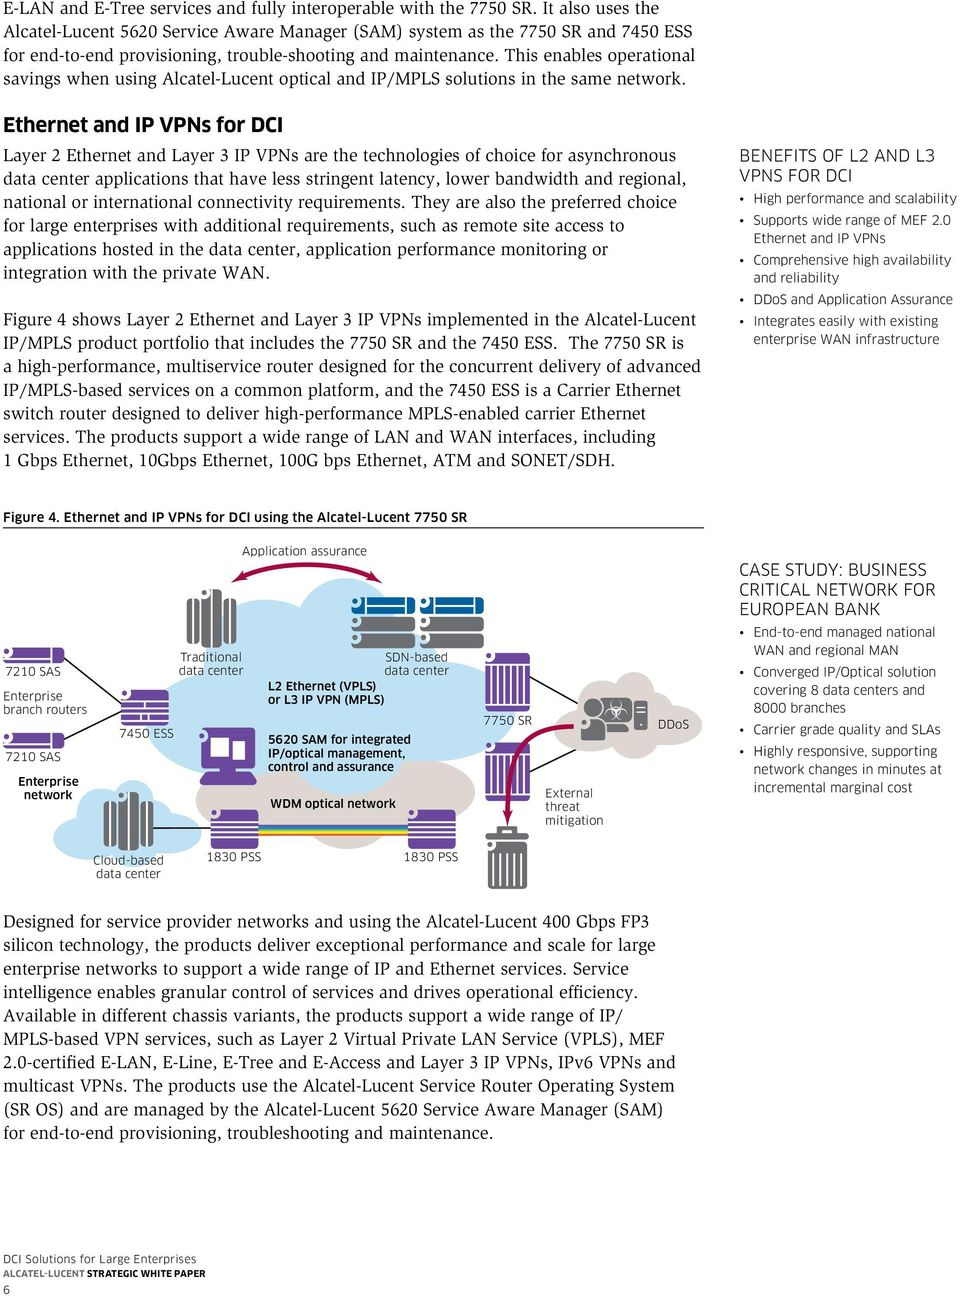 This enables operational savings when using Alcatel-Lucent optical and IP/MPLS solutions in the same network.